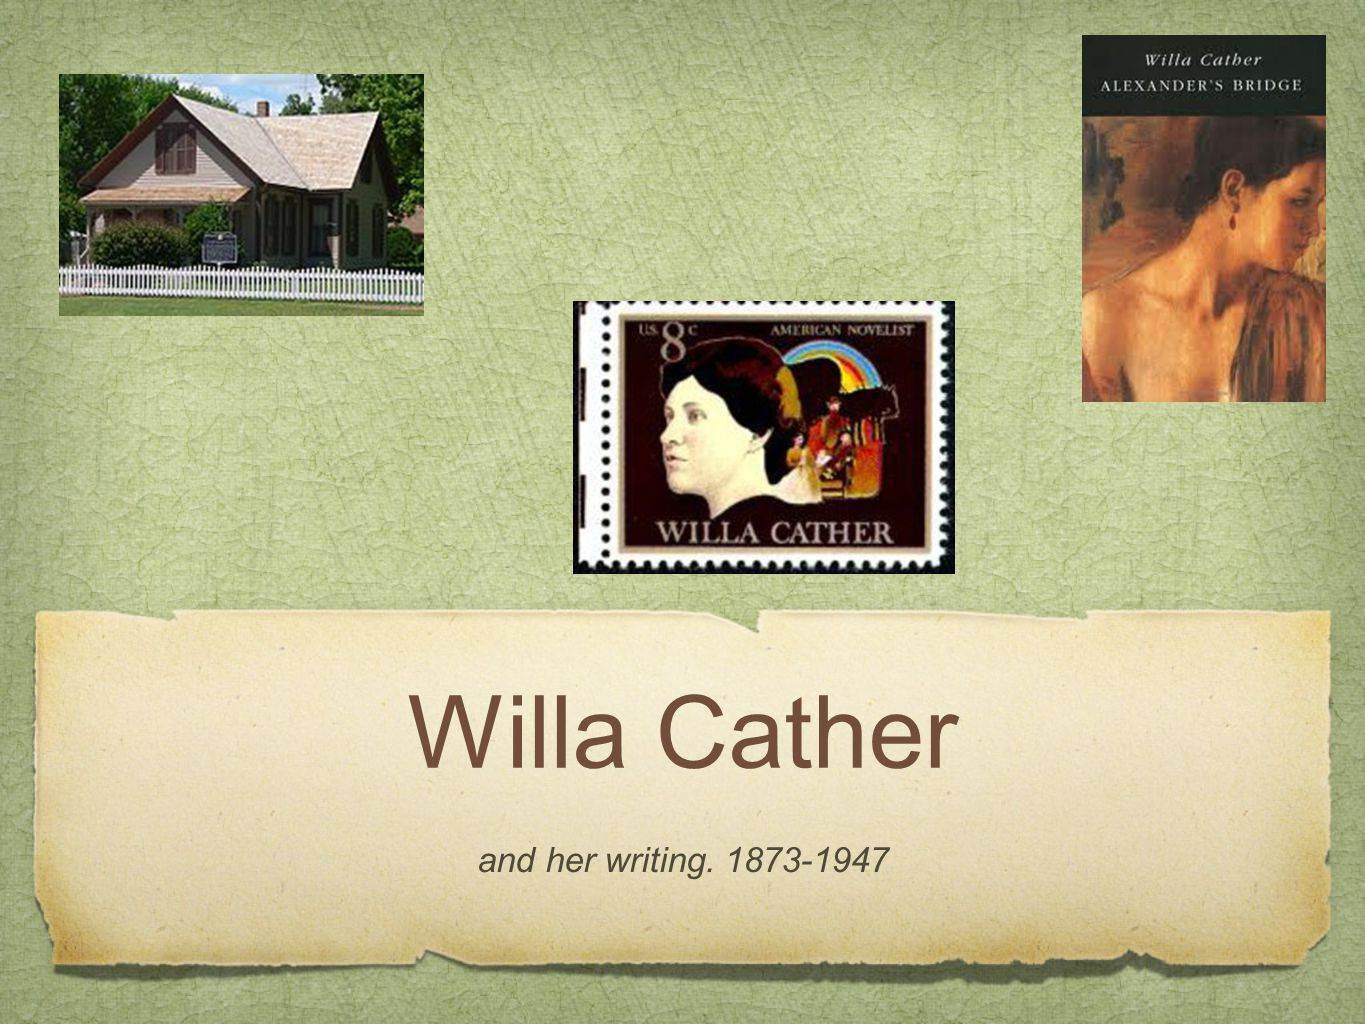 Willa Cather and her writing